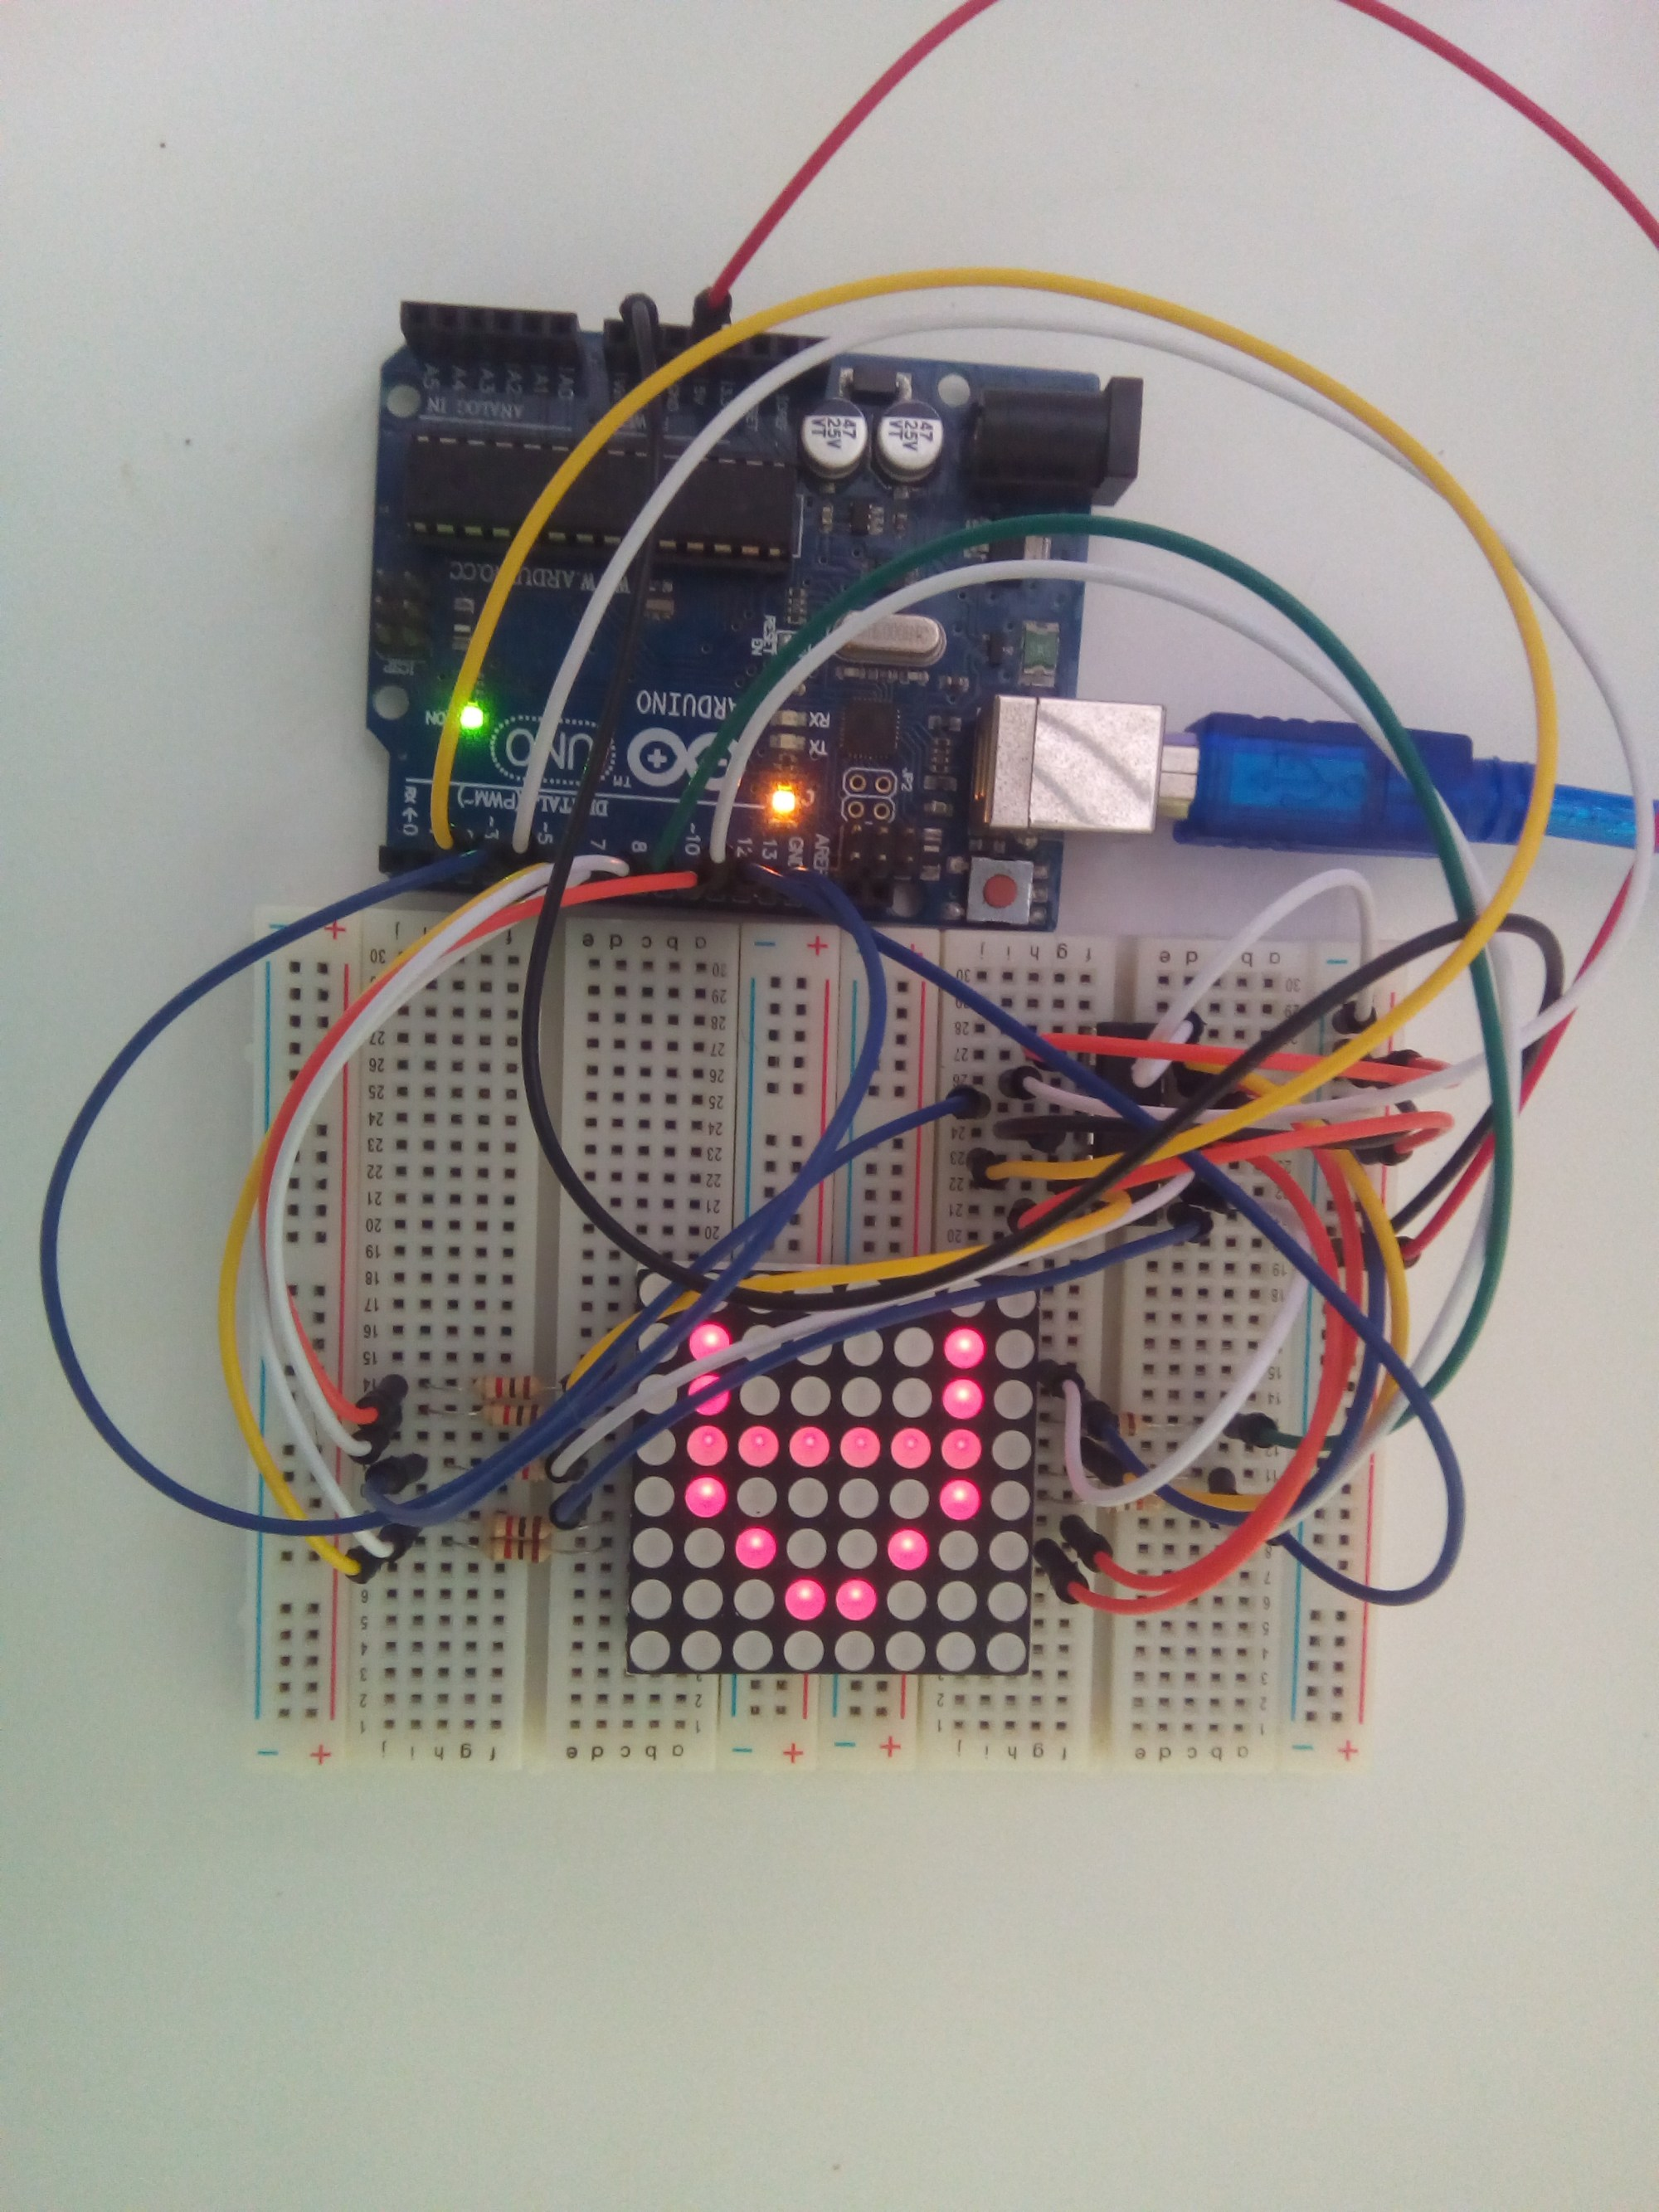 hight resolution of 8x8 led matrix interface with arduino breadboard circuit